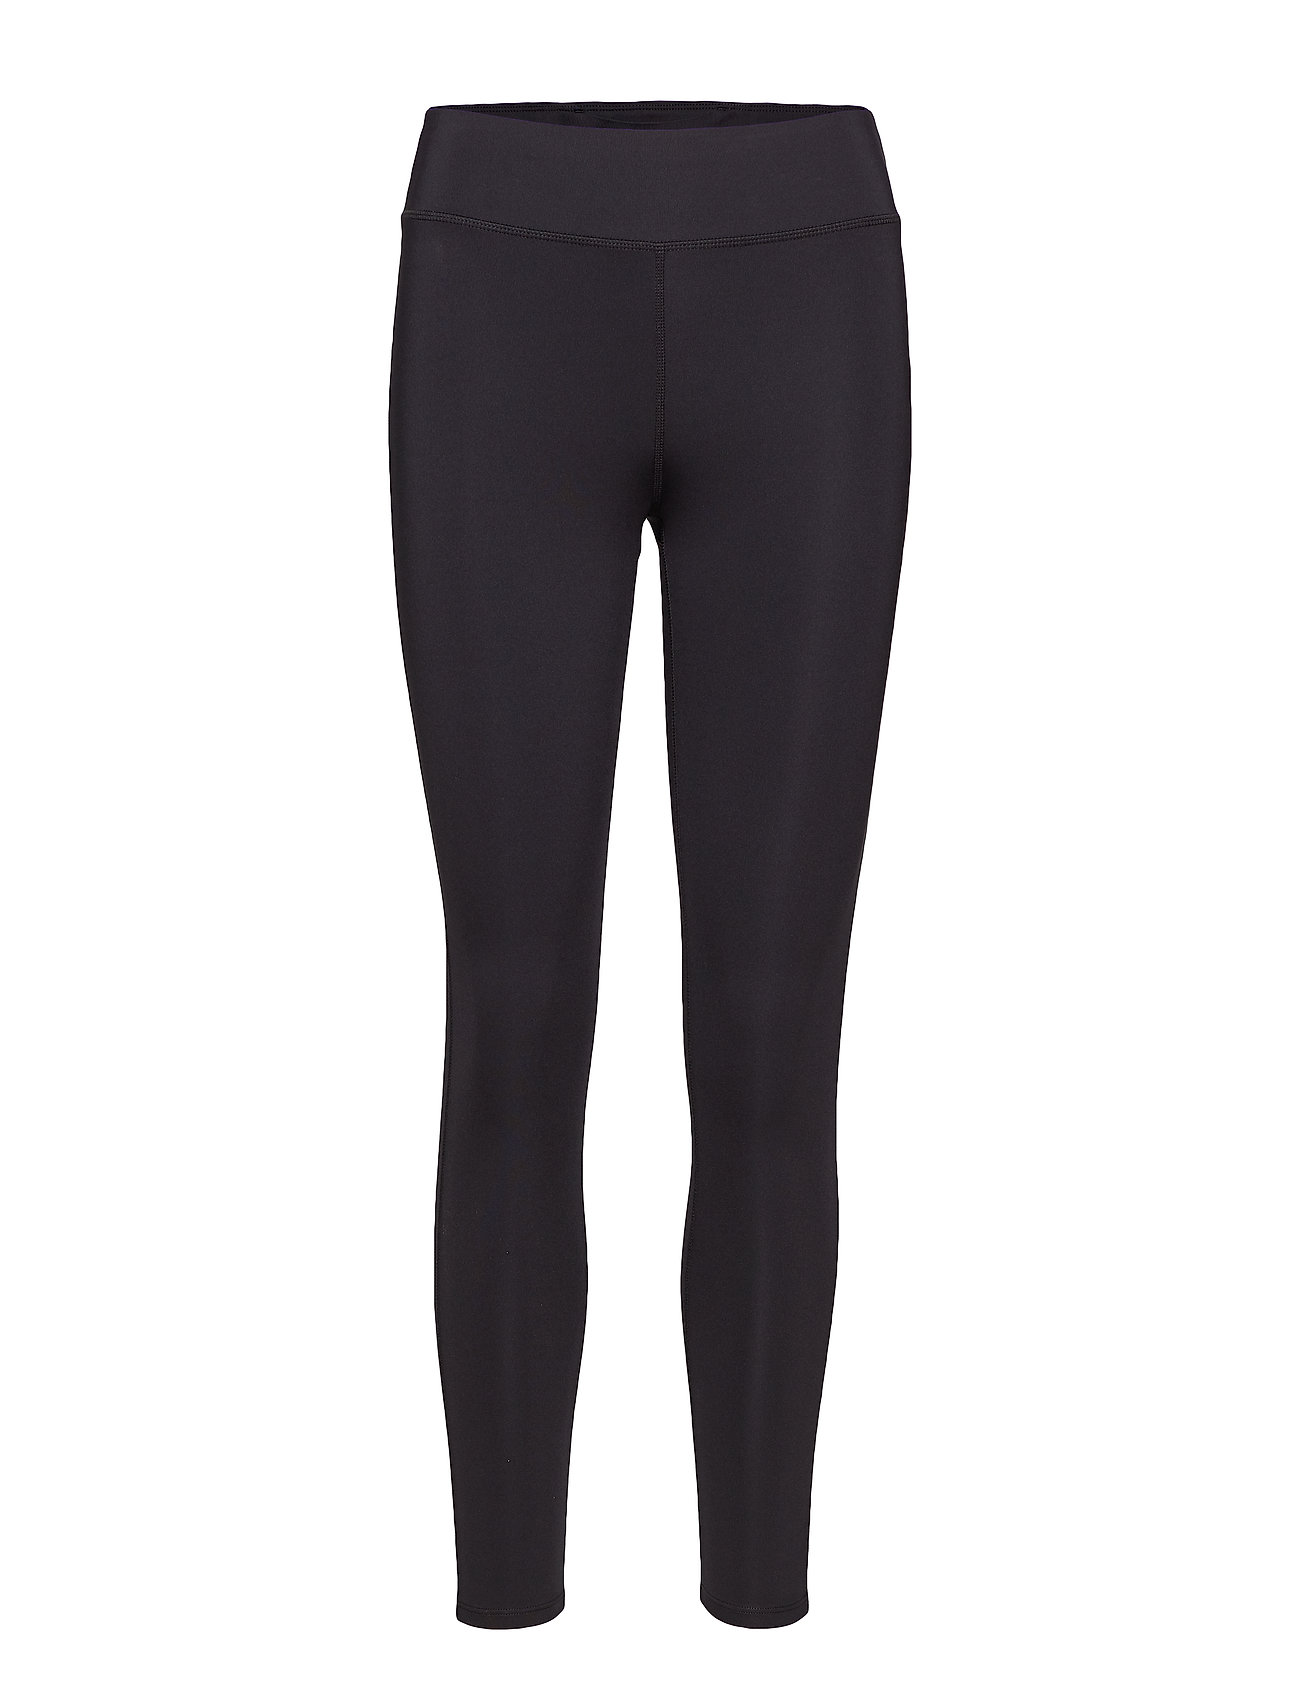 Calvin Klein Performance 7/8 TIGHT LOGO LEG